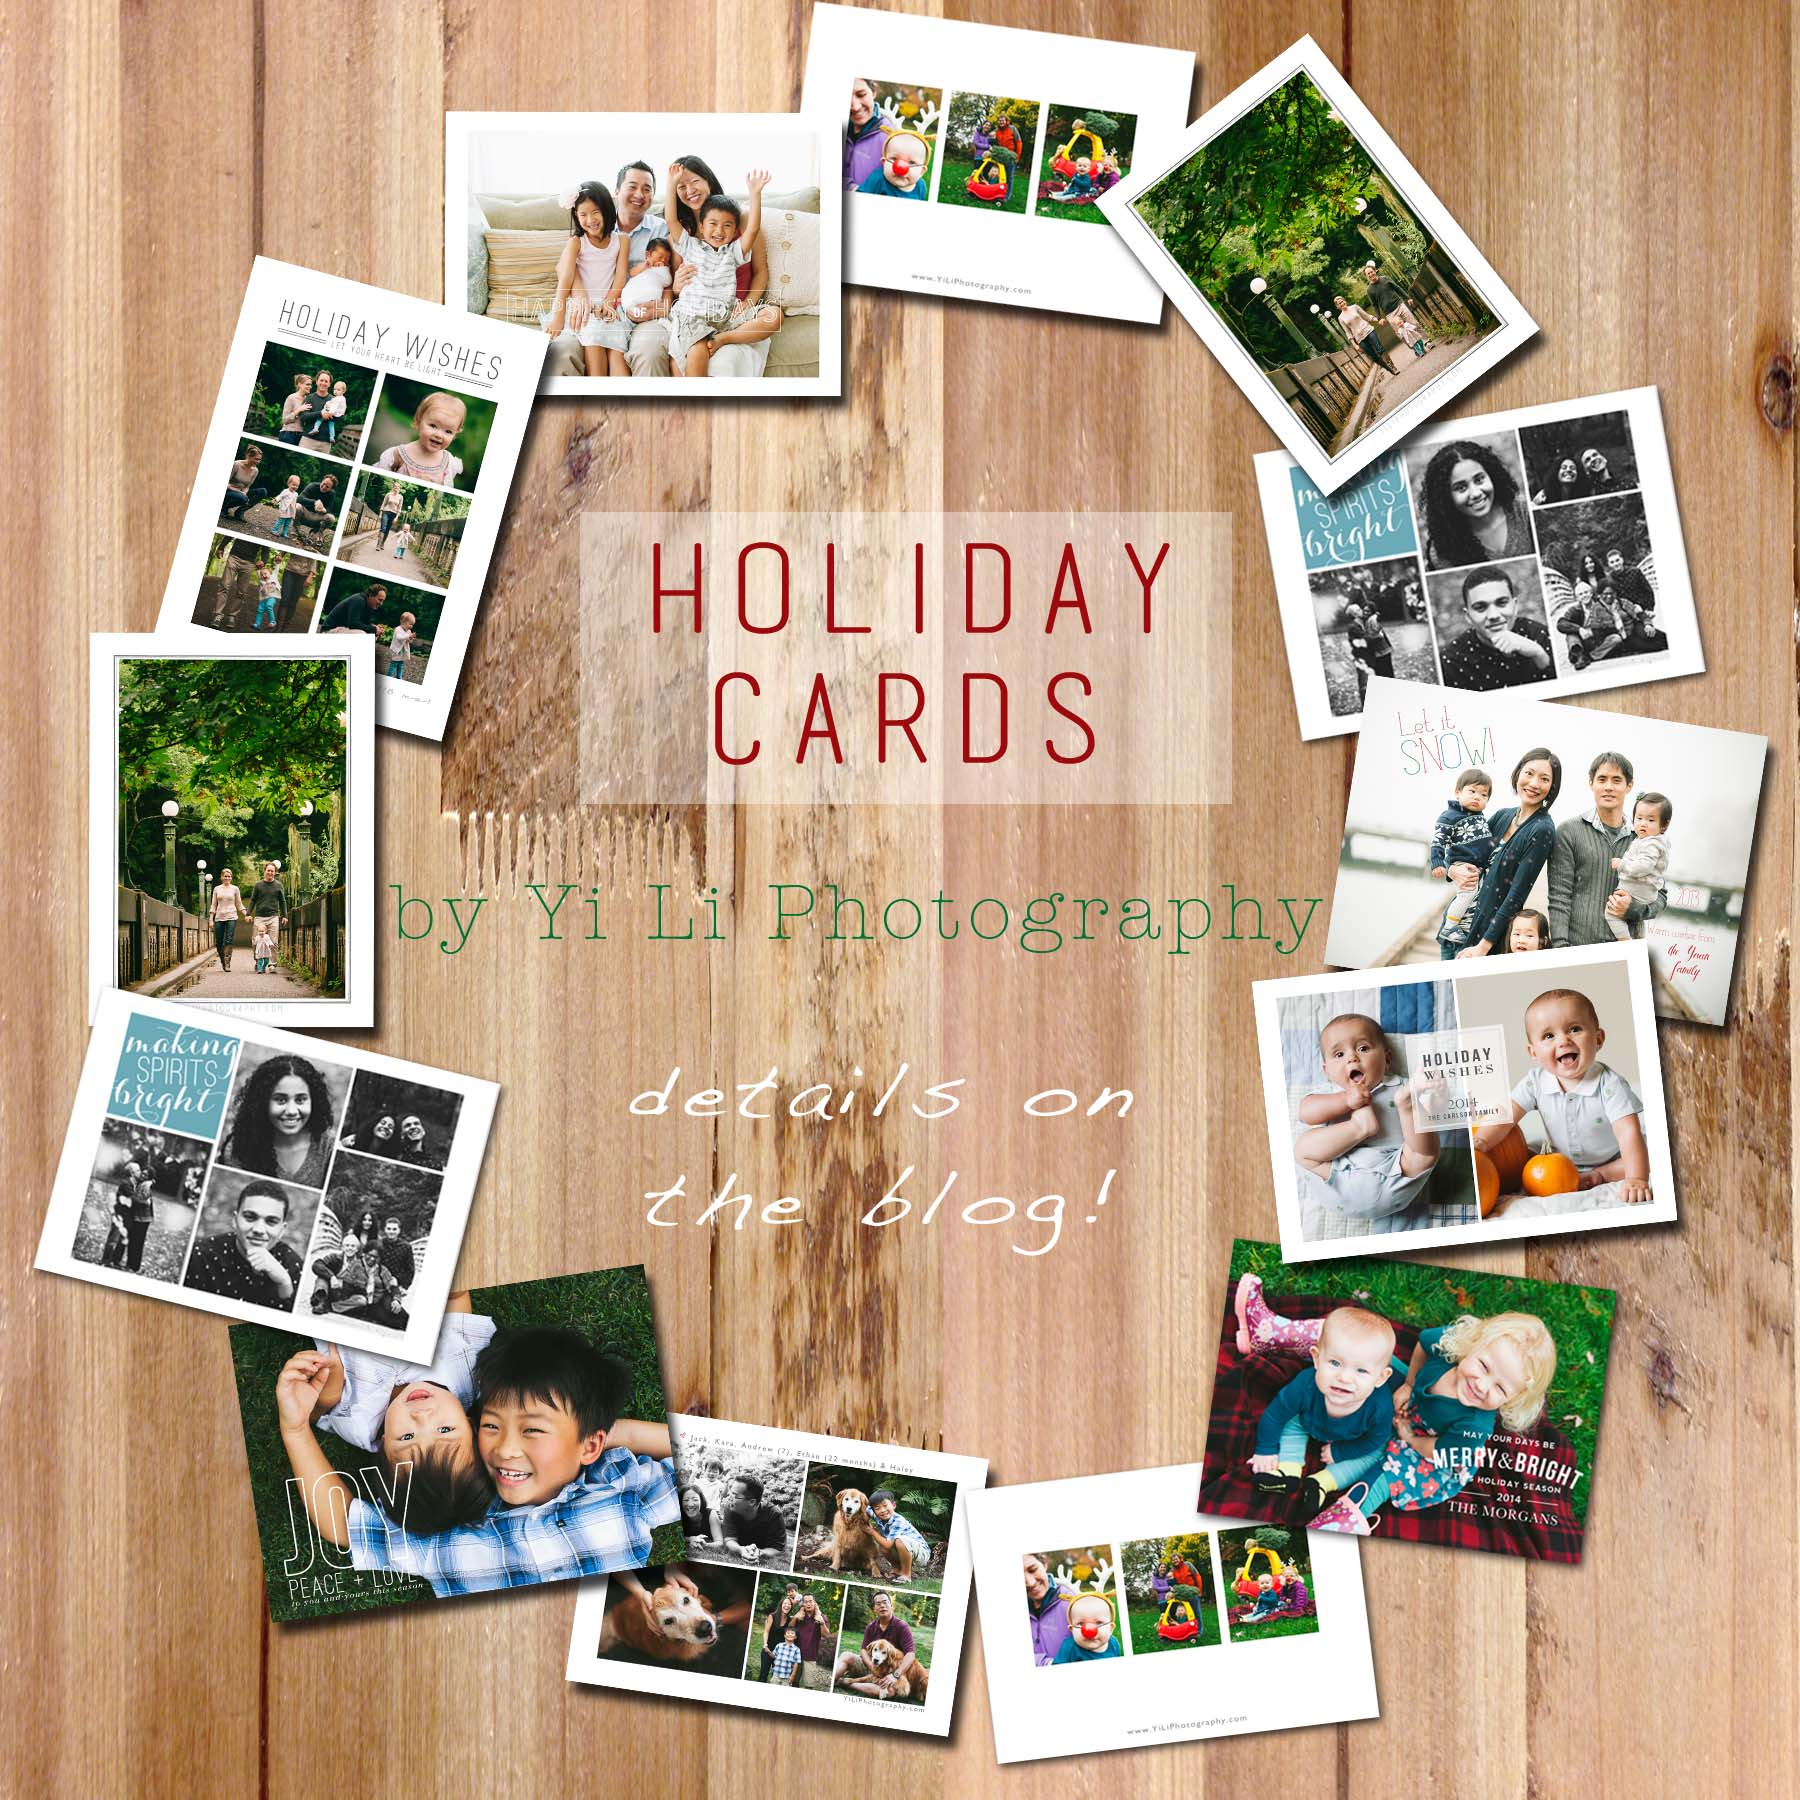 Greeting cards have all been sent {Holiday cards 2014!!!}